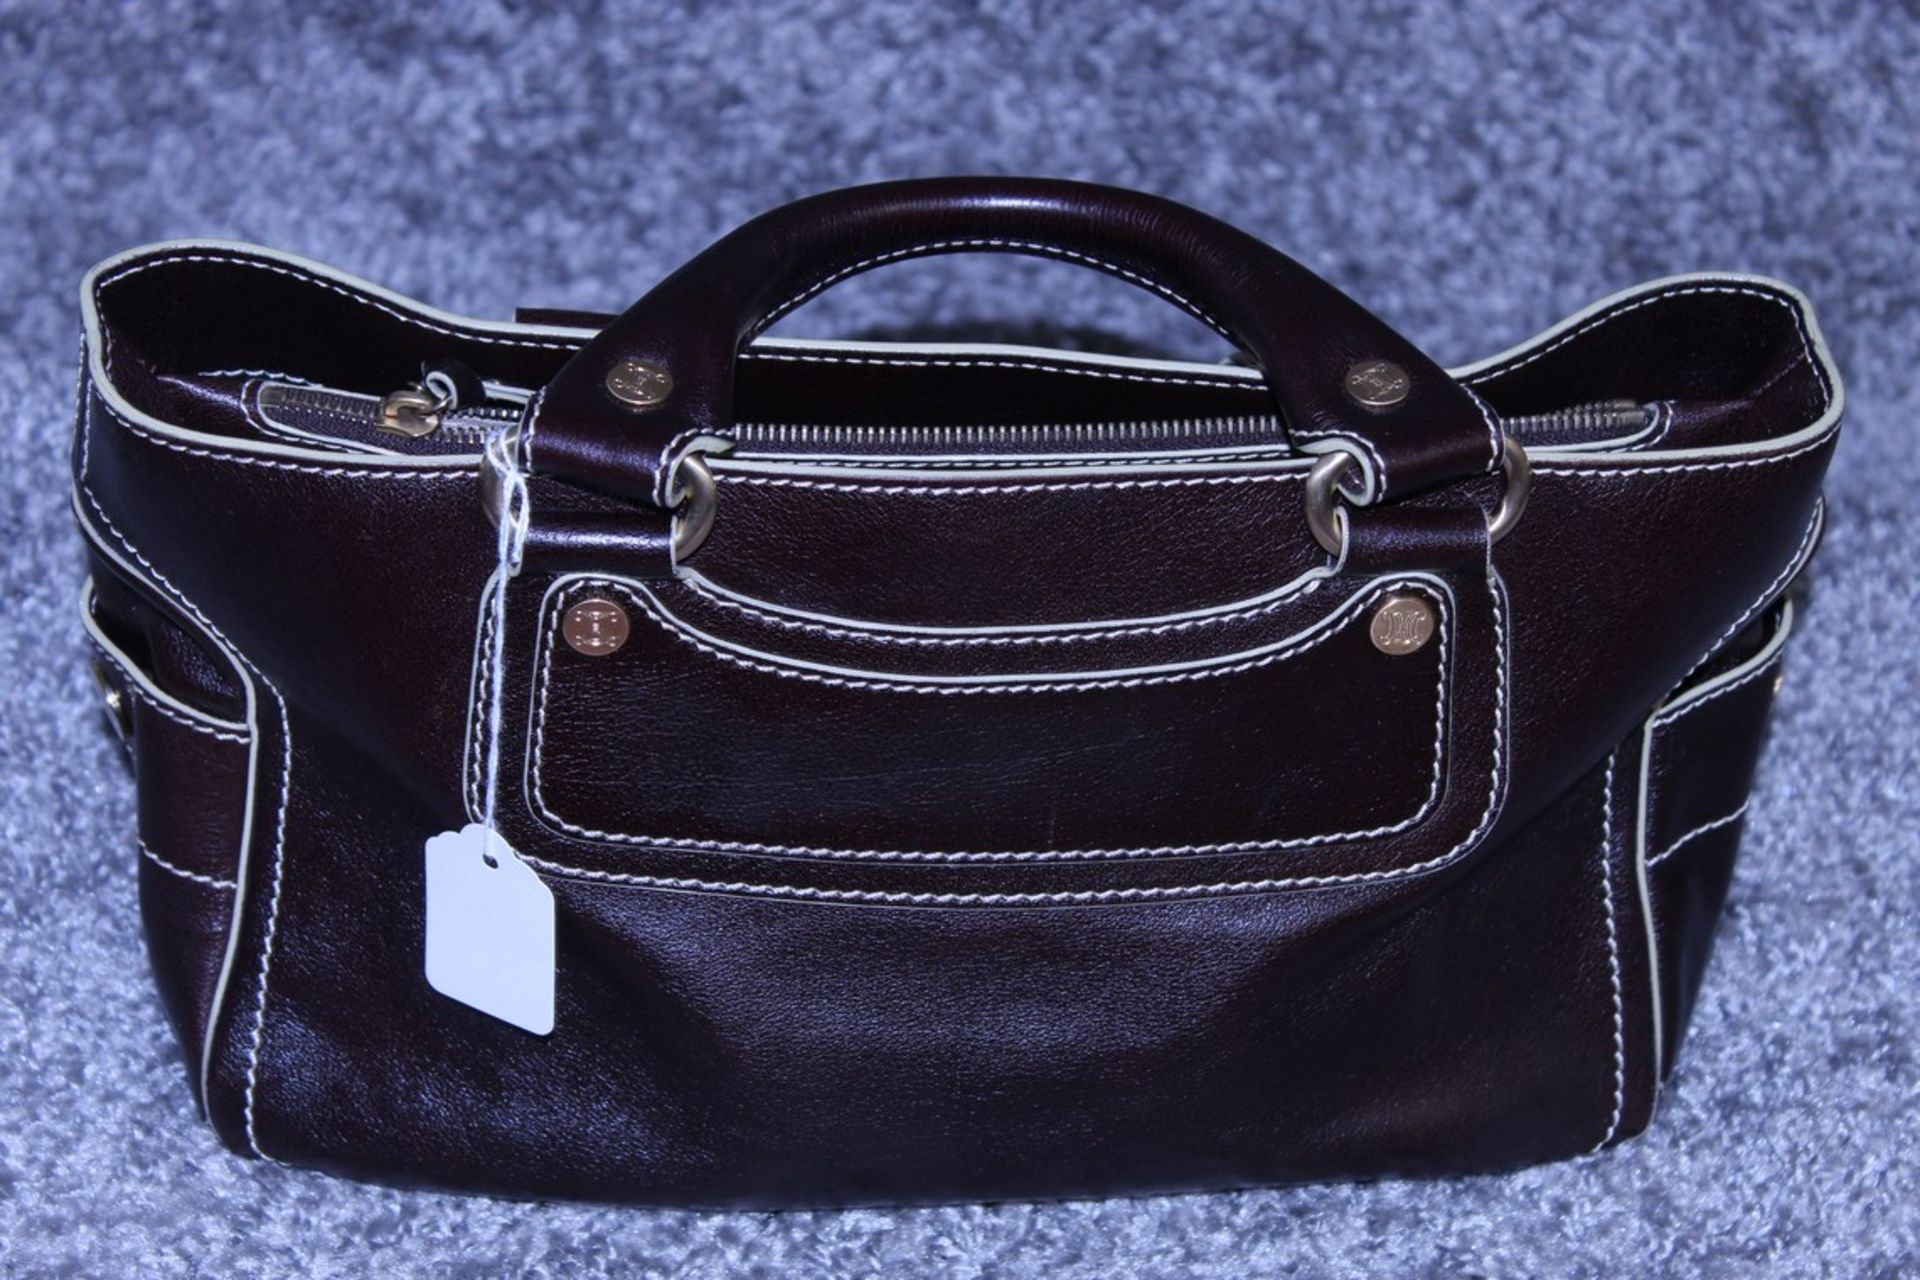 RRP £1,000 Celine Boogie Handbag, Brown Calf Small Grained Leather, Leather Handles, 22X30X13Cm ( - Image 3 of 5